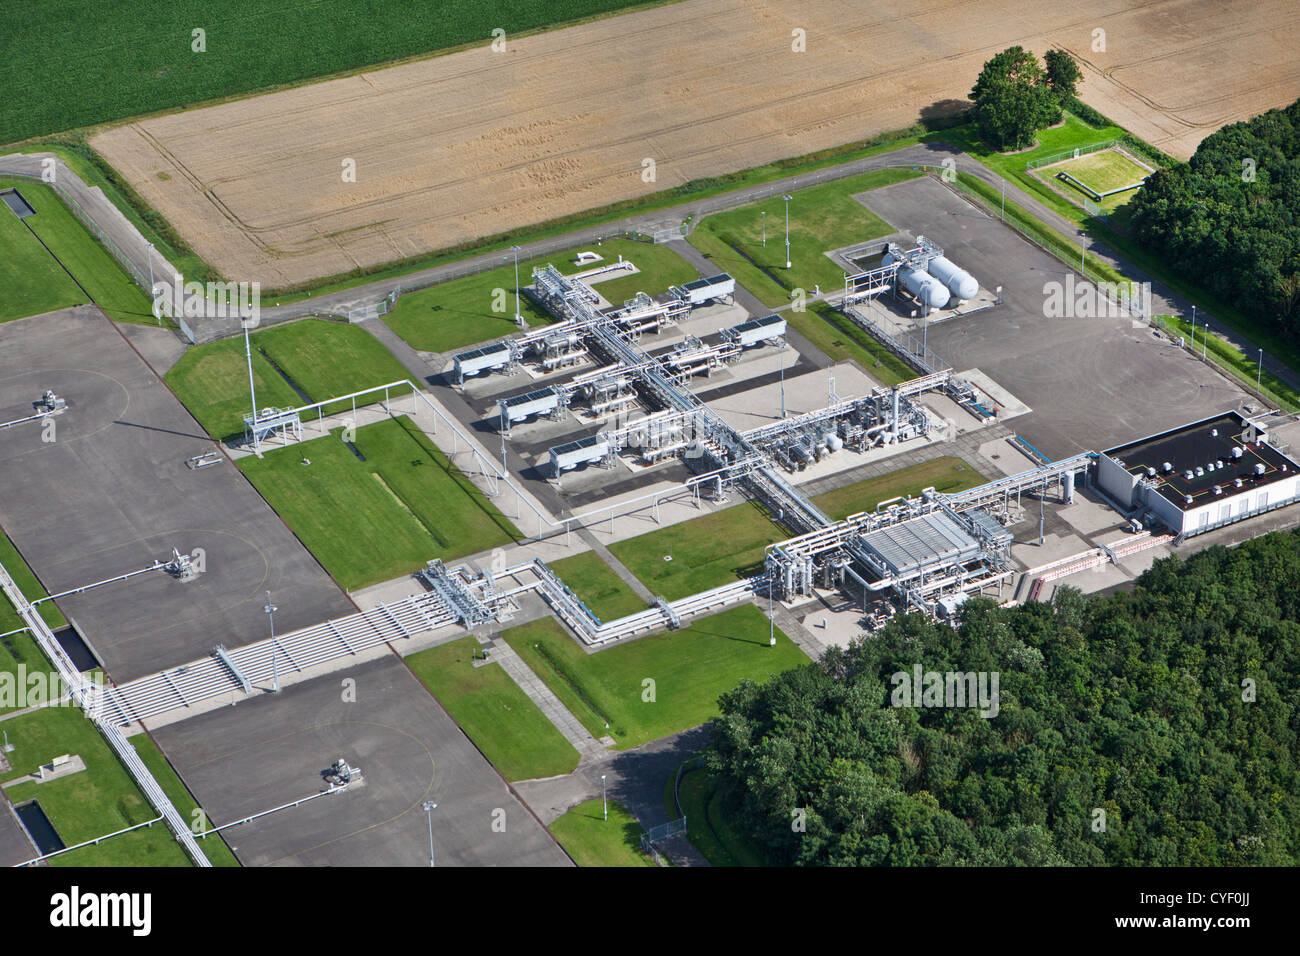 The Netherlands, Appingedam. Gas distribution center. Aerial. - Stock Image